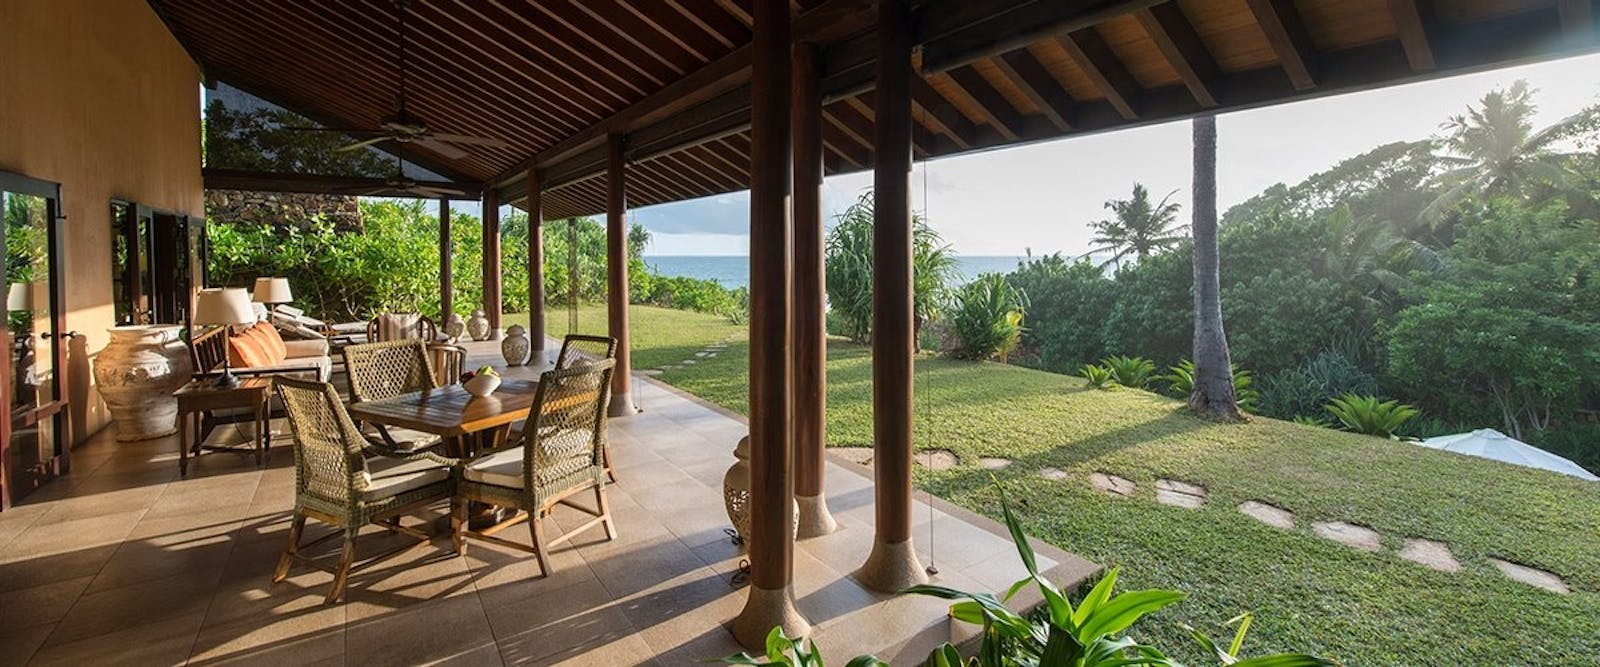 Grand Ocean View Villa Verandah at Cape Weligama, Sri Lanka